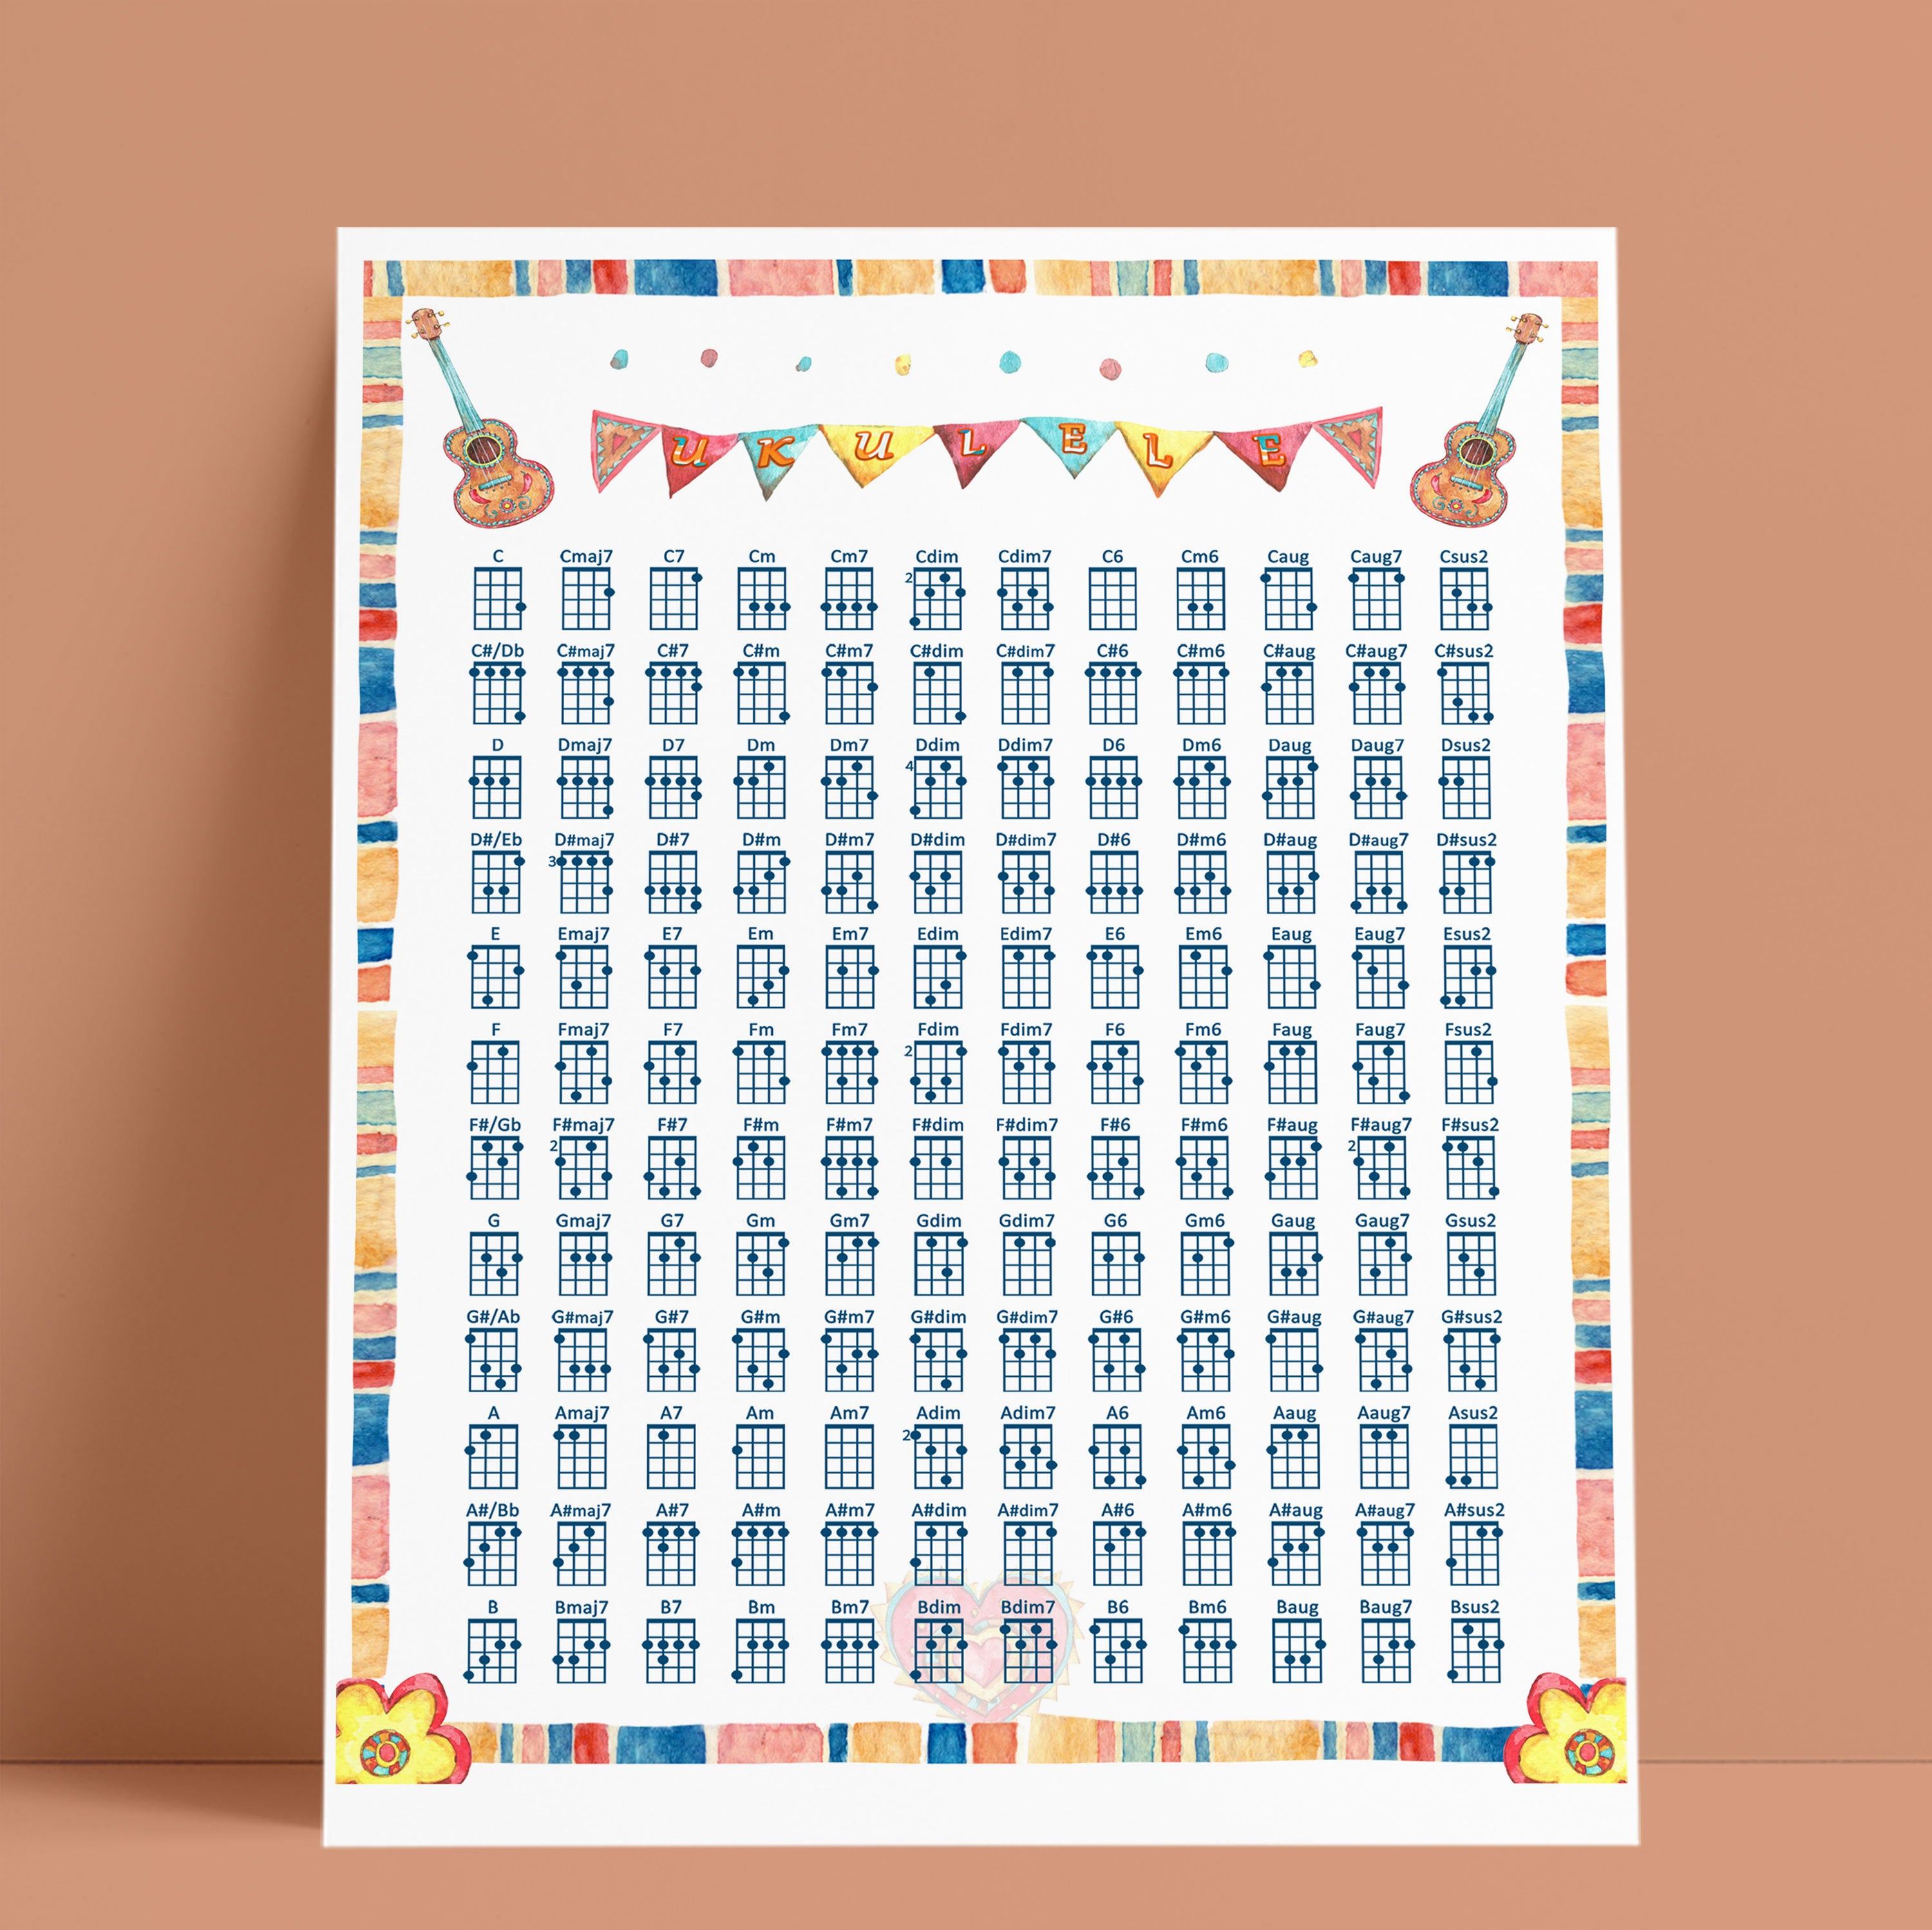 Ukulele Chords Chart Ukulele Chords Chart Ukulele Learning Music Mexican Theme Border Wall Art Poster Prints Digital Art Download